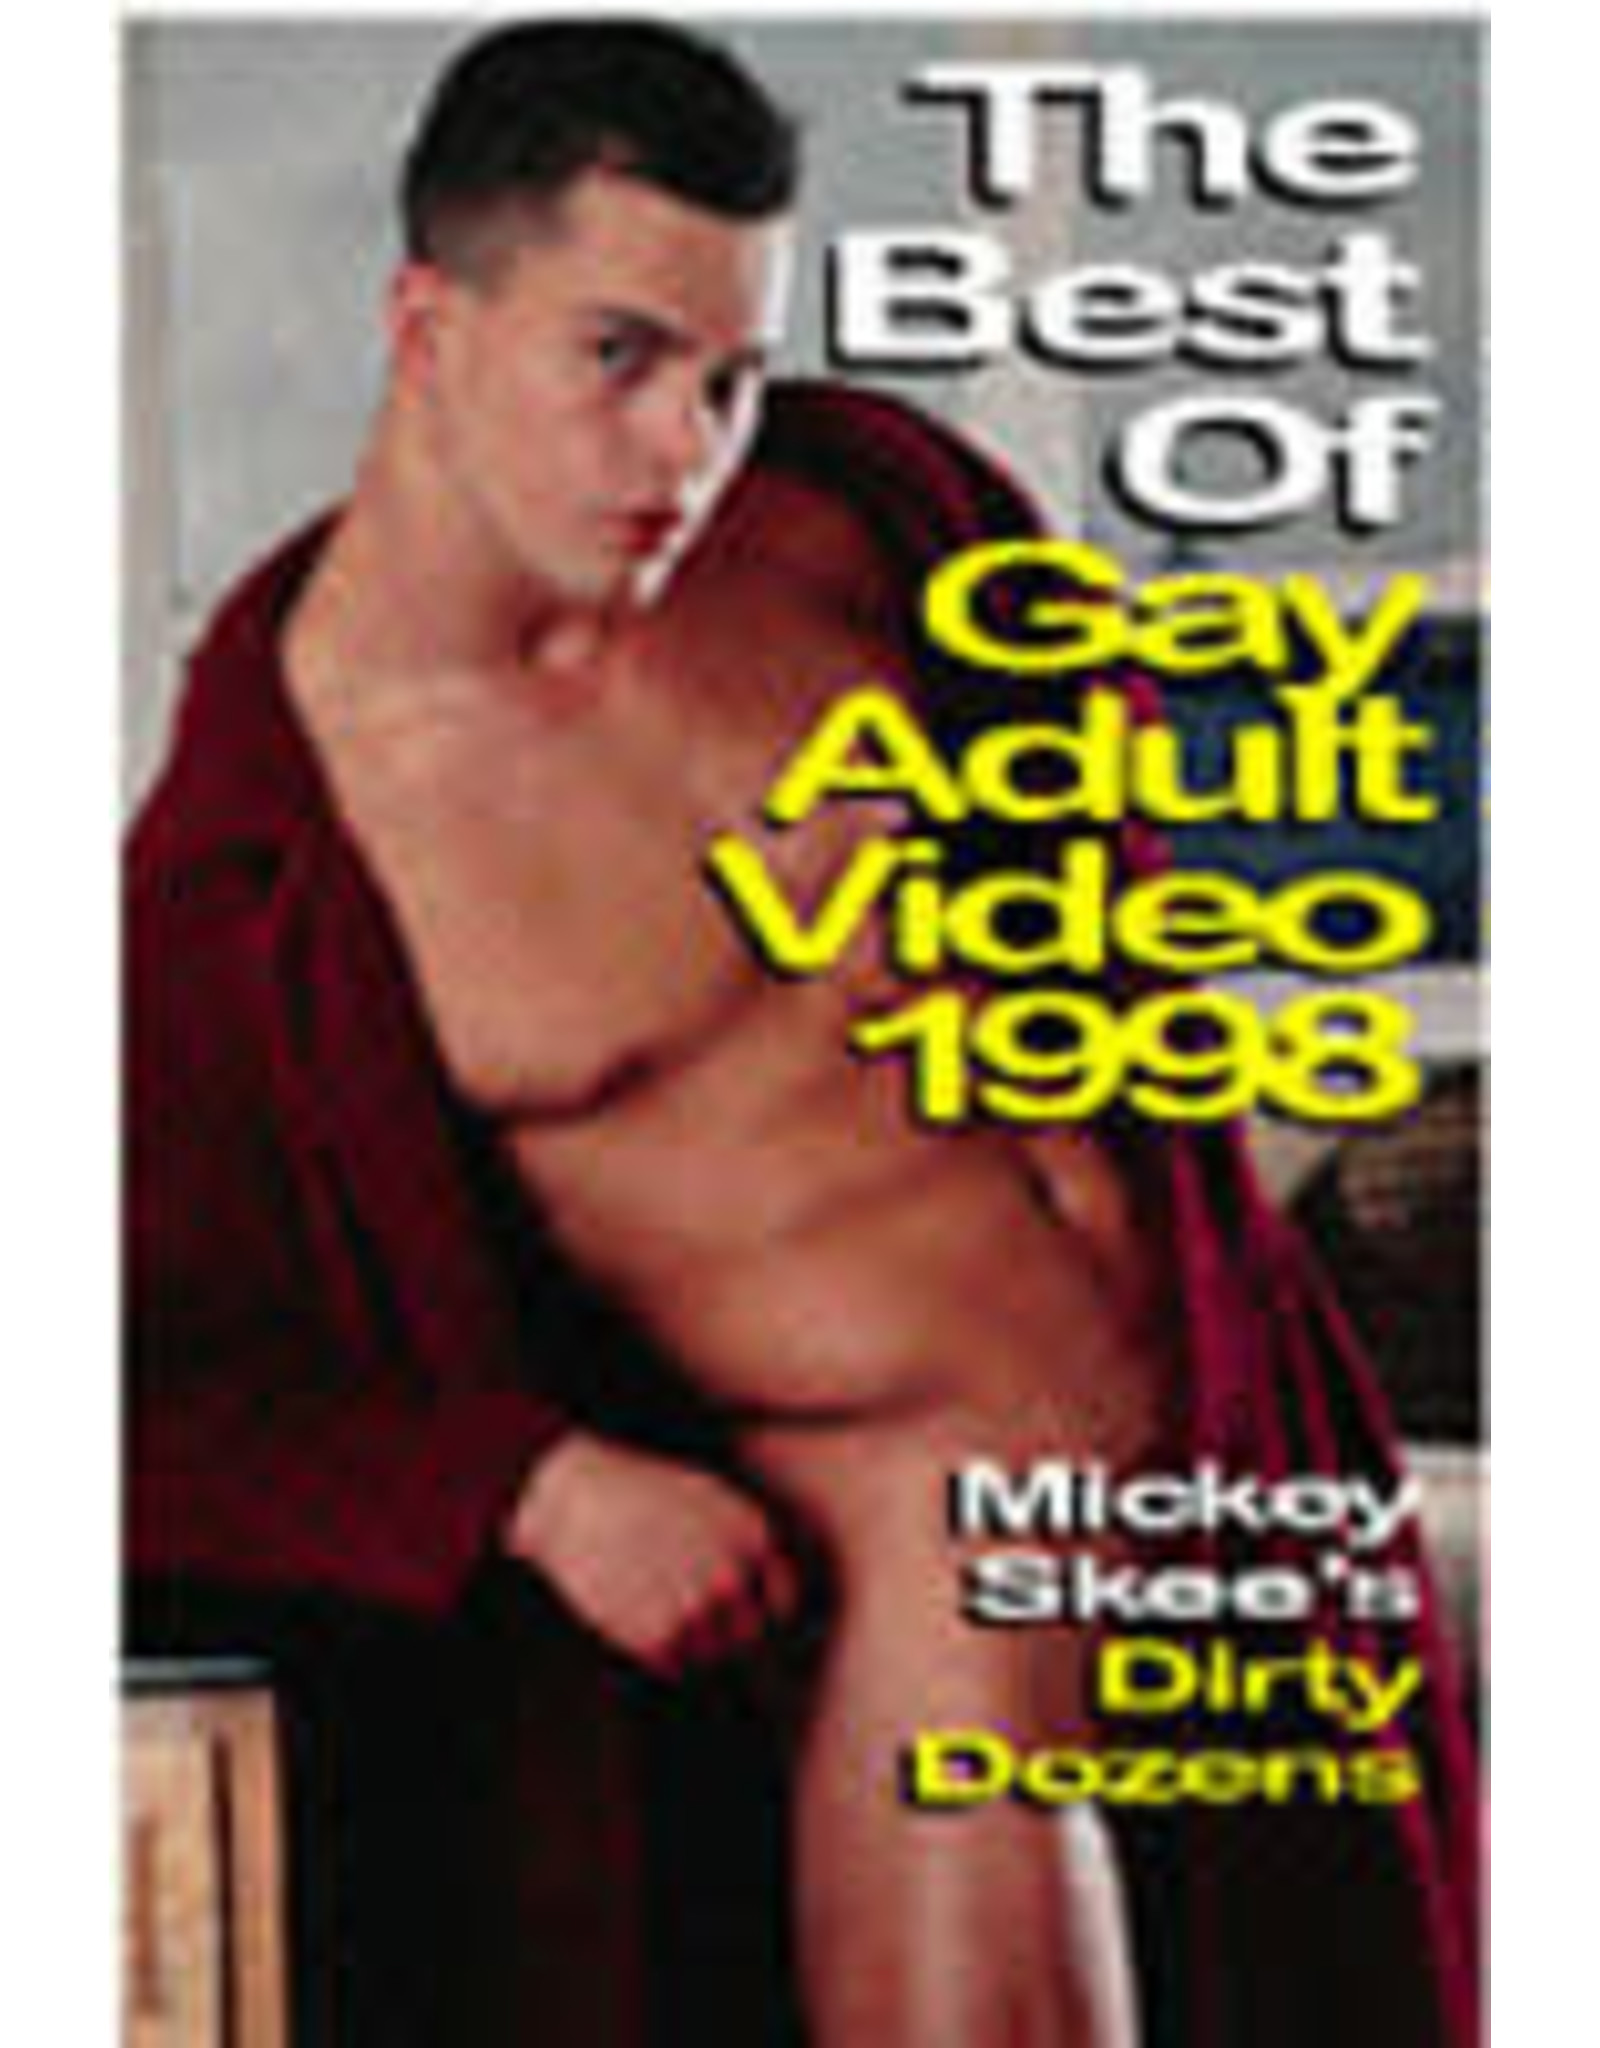 BEST OF GAY ADULT VIDEO 1998